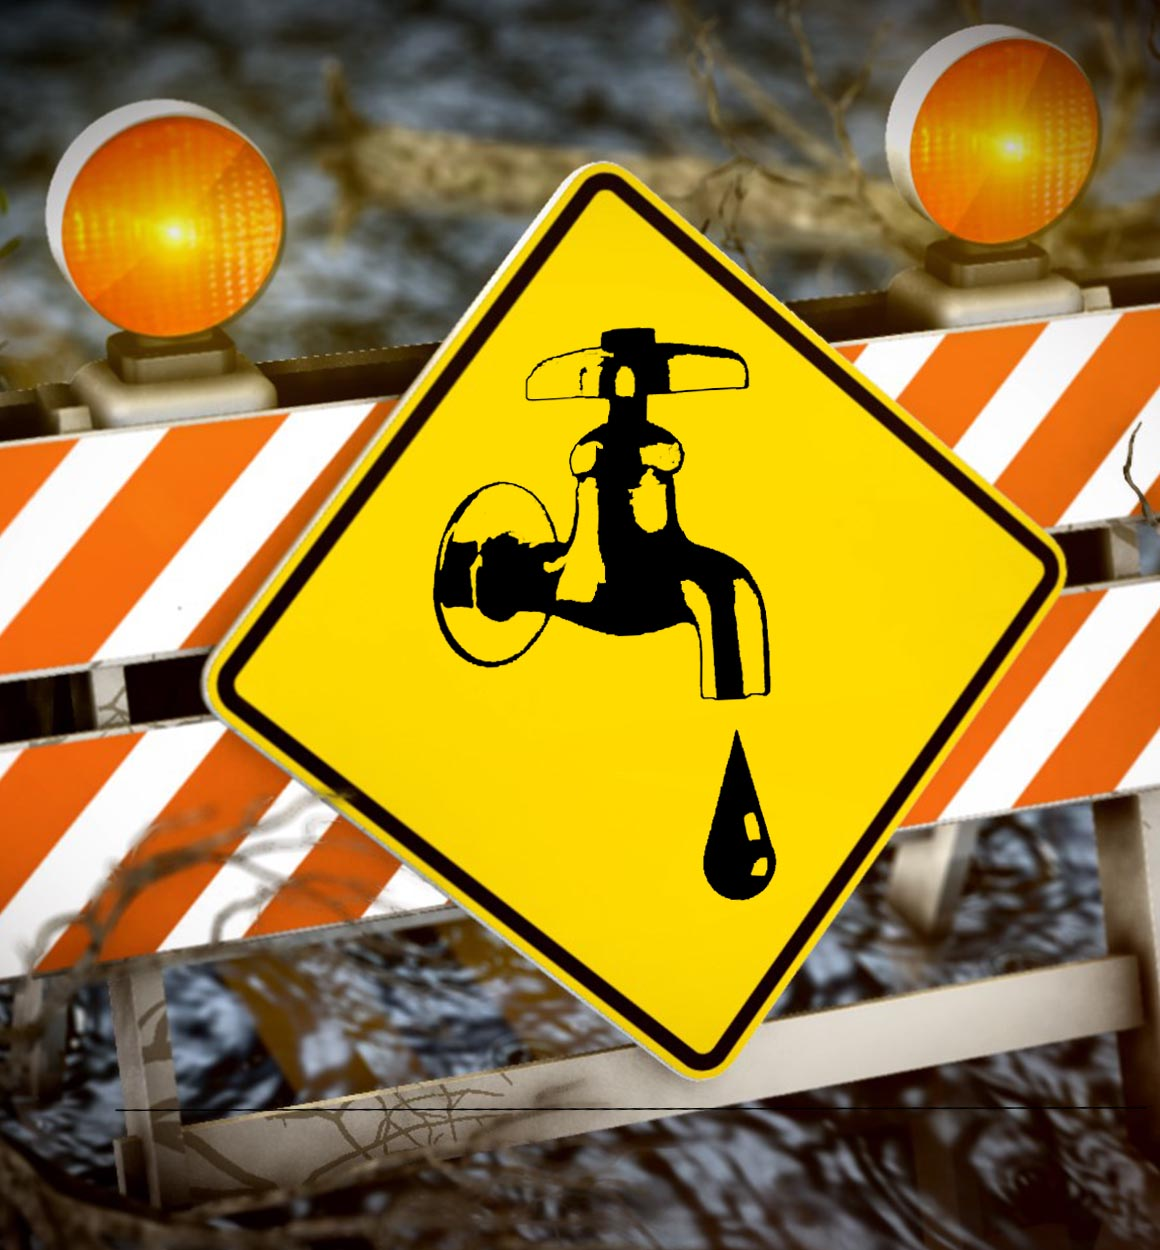 Western Virginia Water Authority crews are on the scene of a water line break which has impacted homes and traffic on portions of Liberty Road.